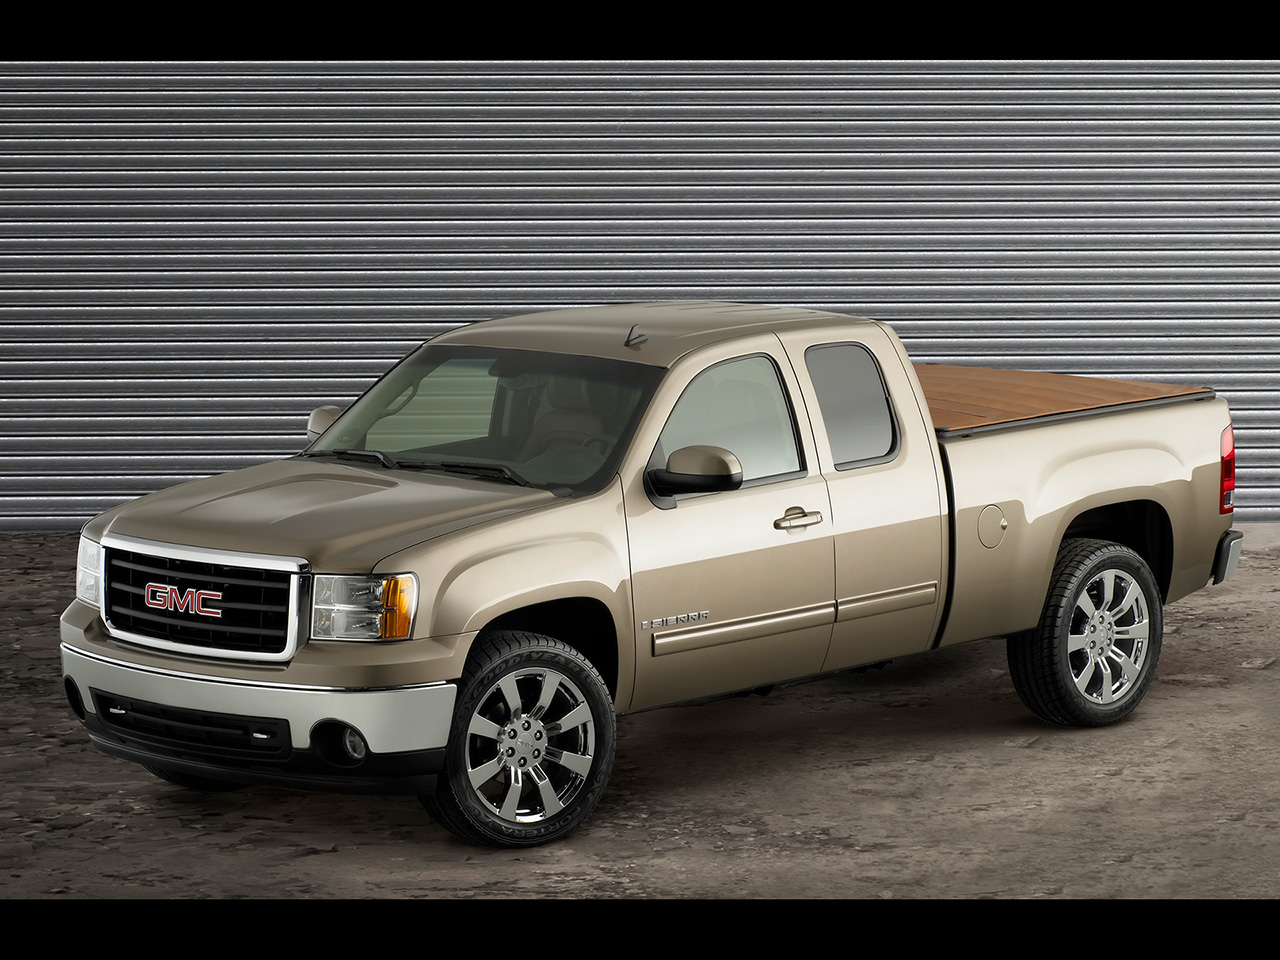 2007 Gmc Sierra 1500 Information And Photos Zombiedrive